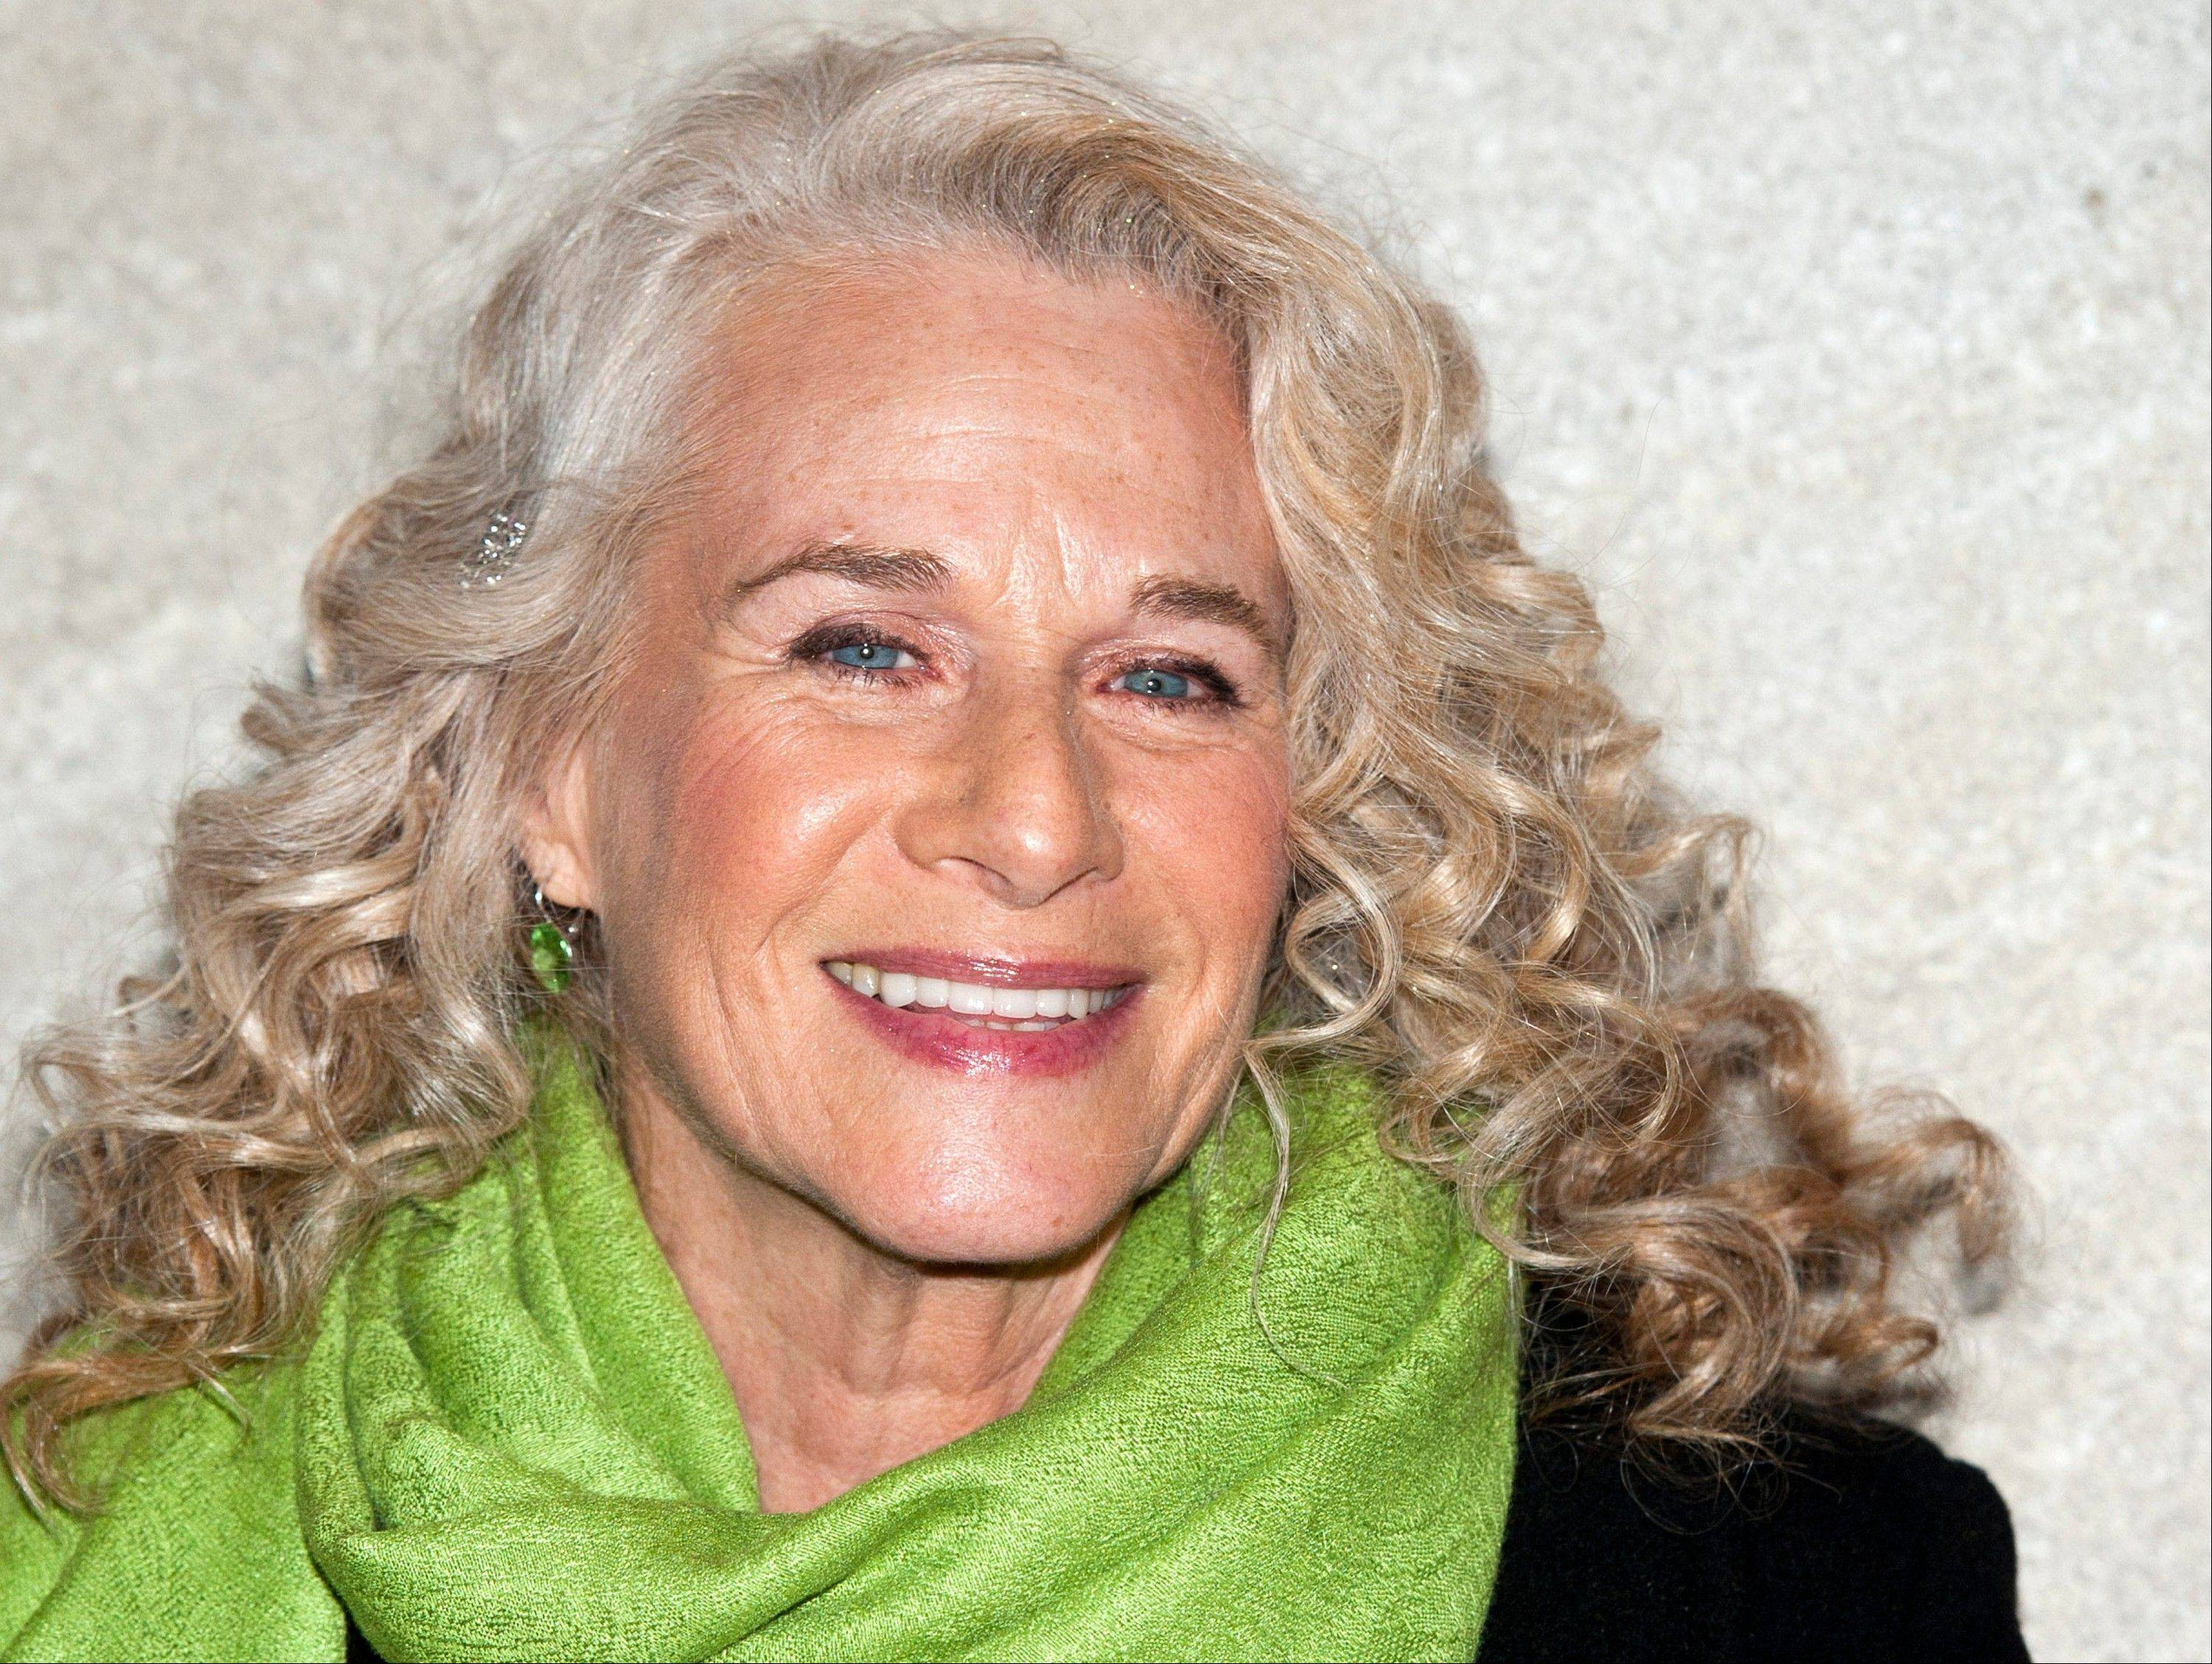 Associated Pres/Nov. 30, 2011 Singer-musician Carole King in New York.